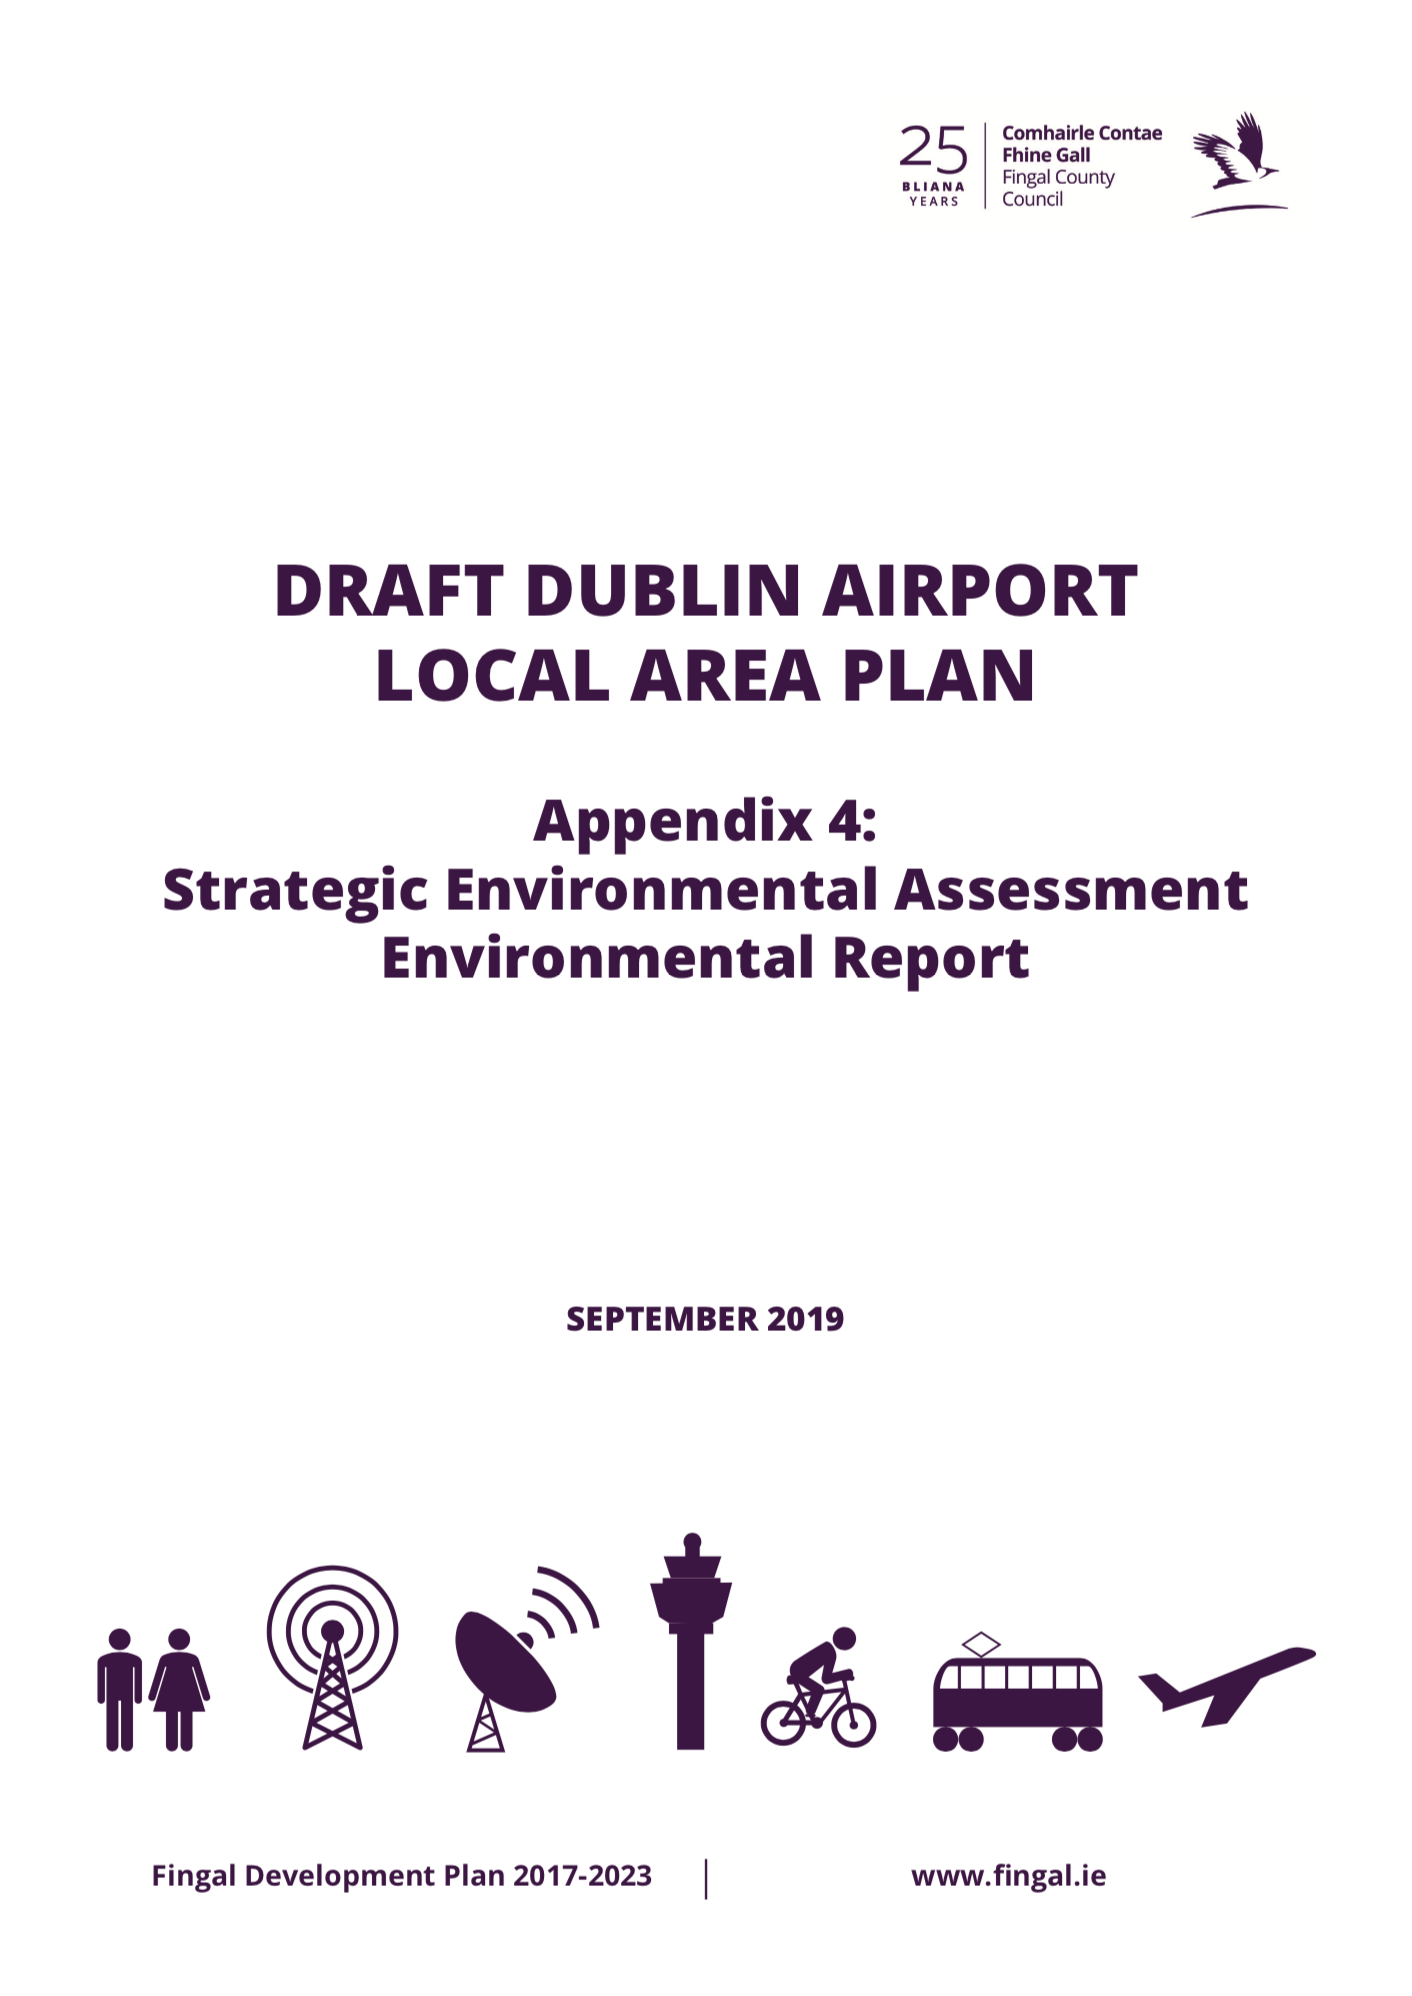 Appendix 4 - SEA Environmental Report.pdf